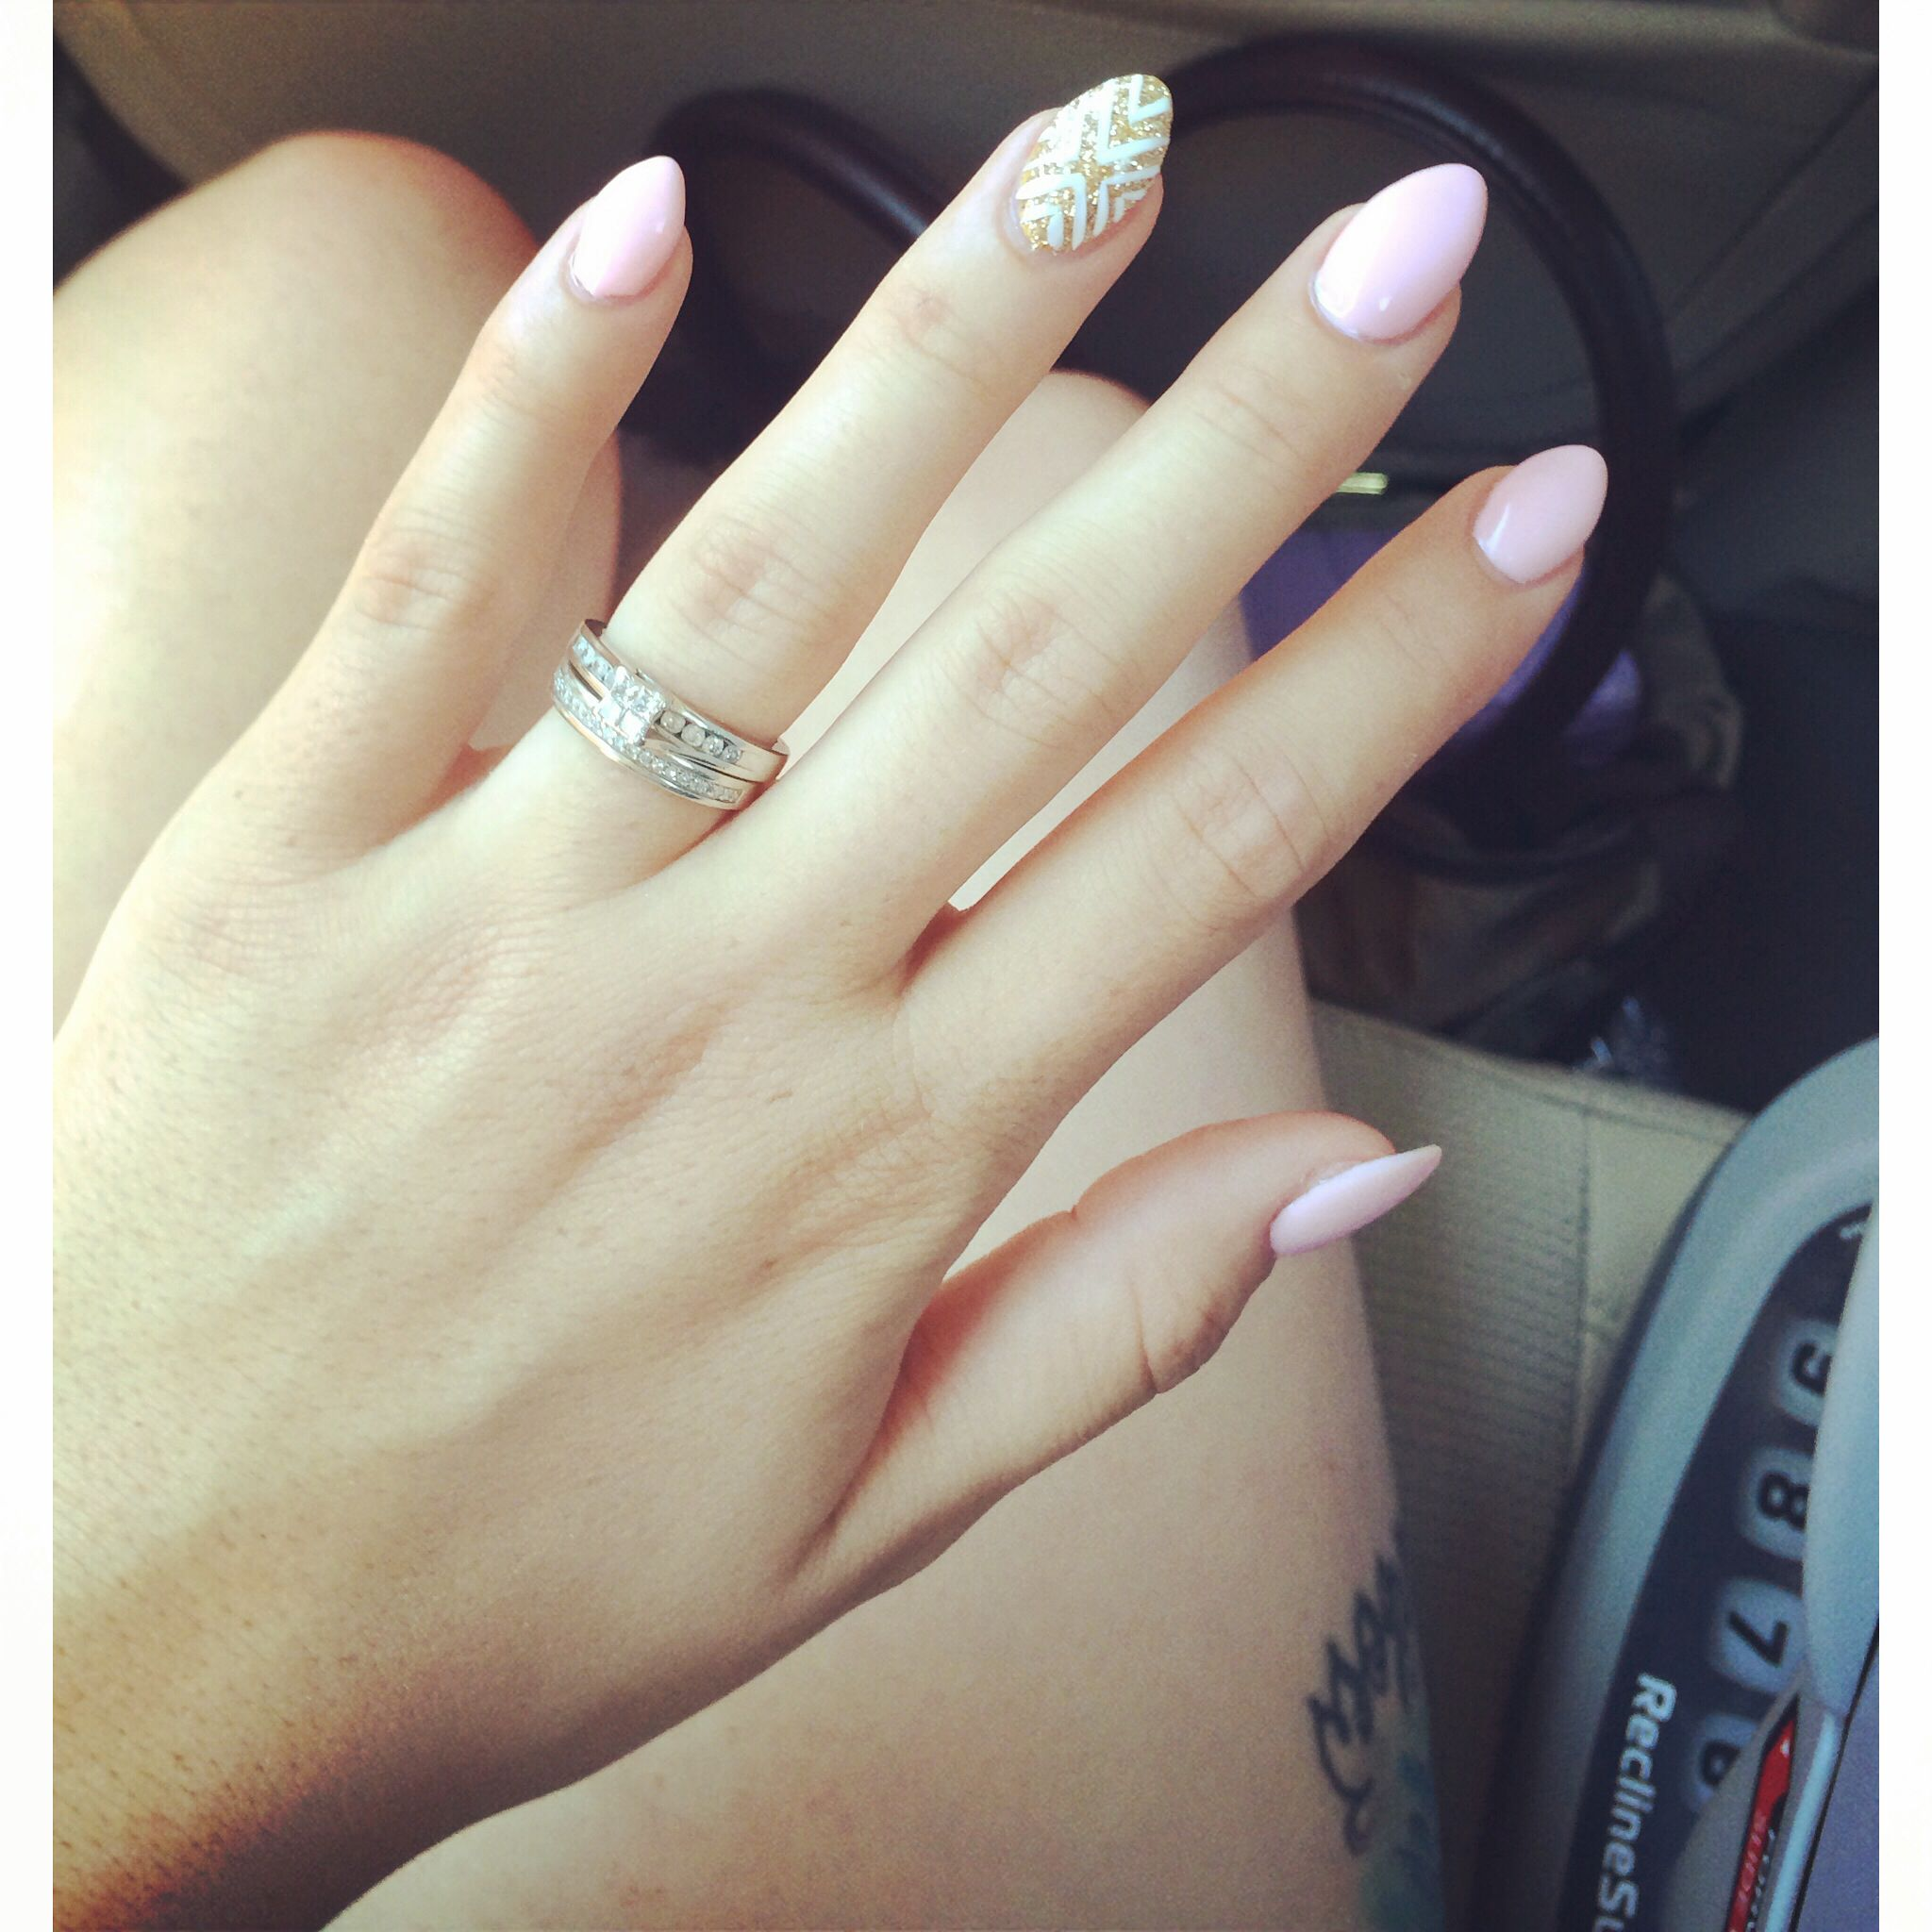 Oval Nails This Is Exactly How I Want My Dont Like The Design On Ring Finger But Shape And Length Perfect